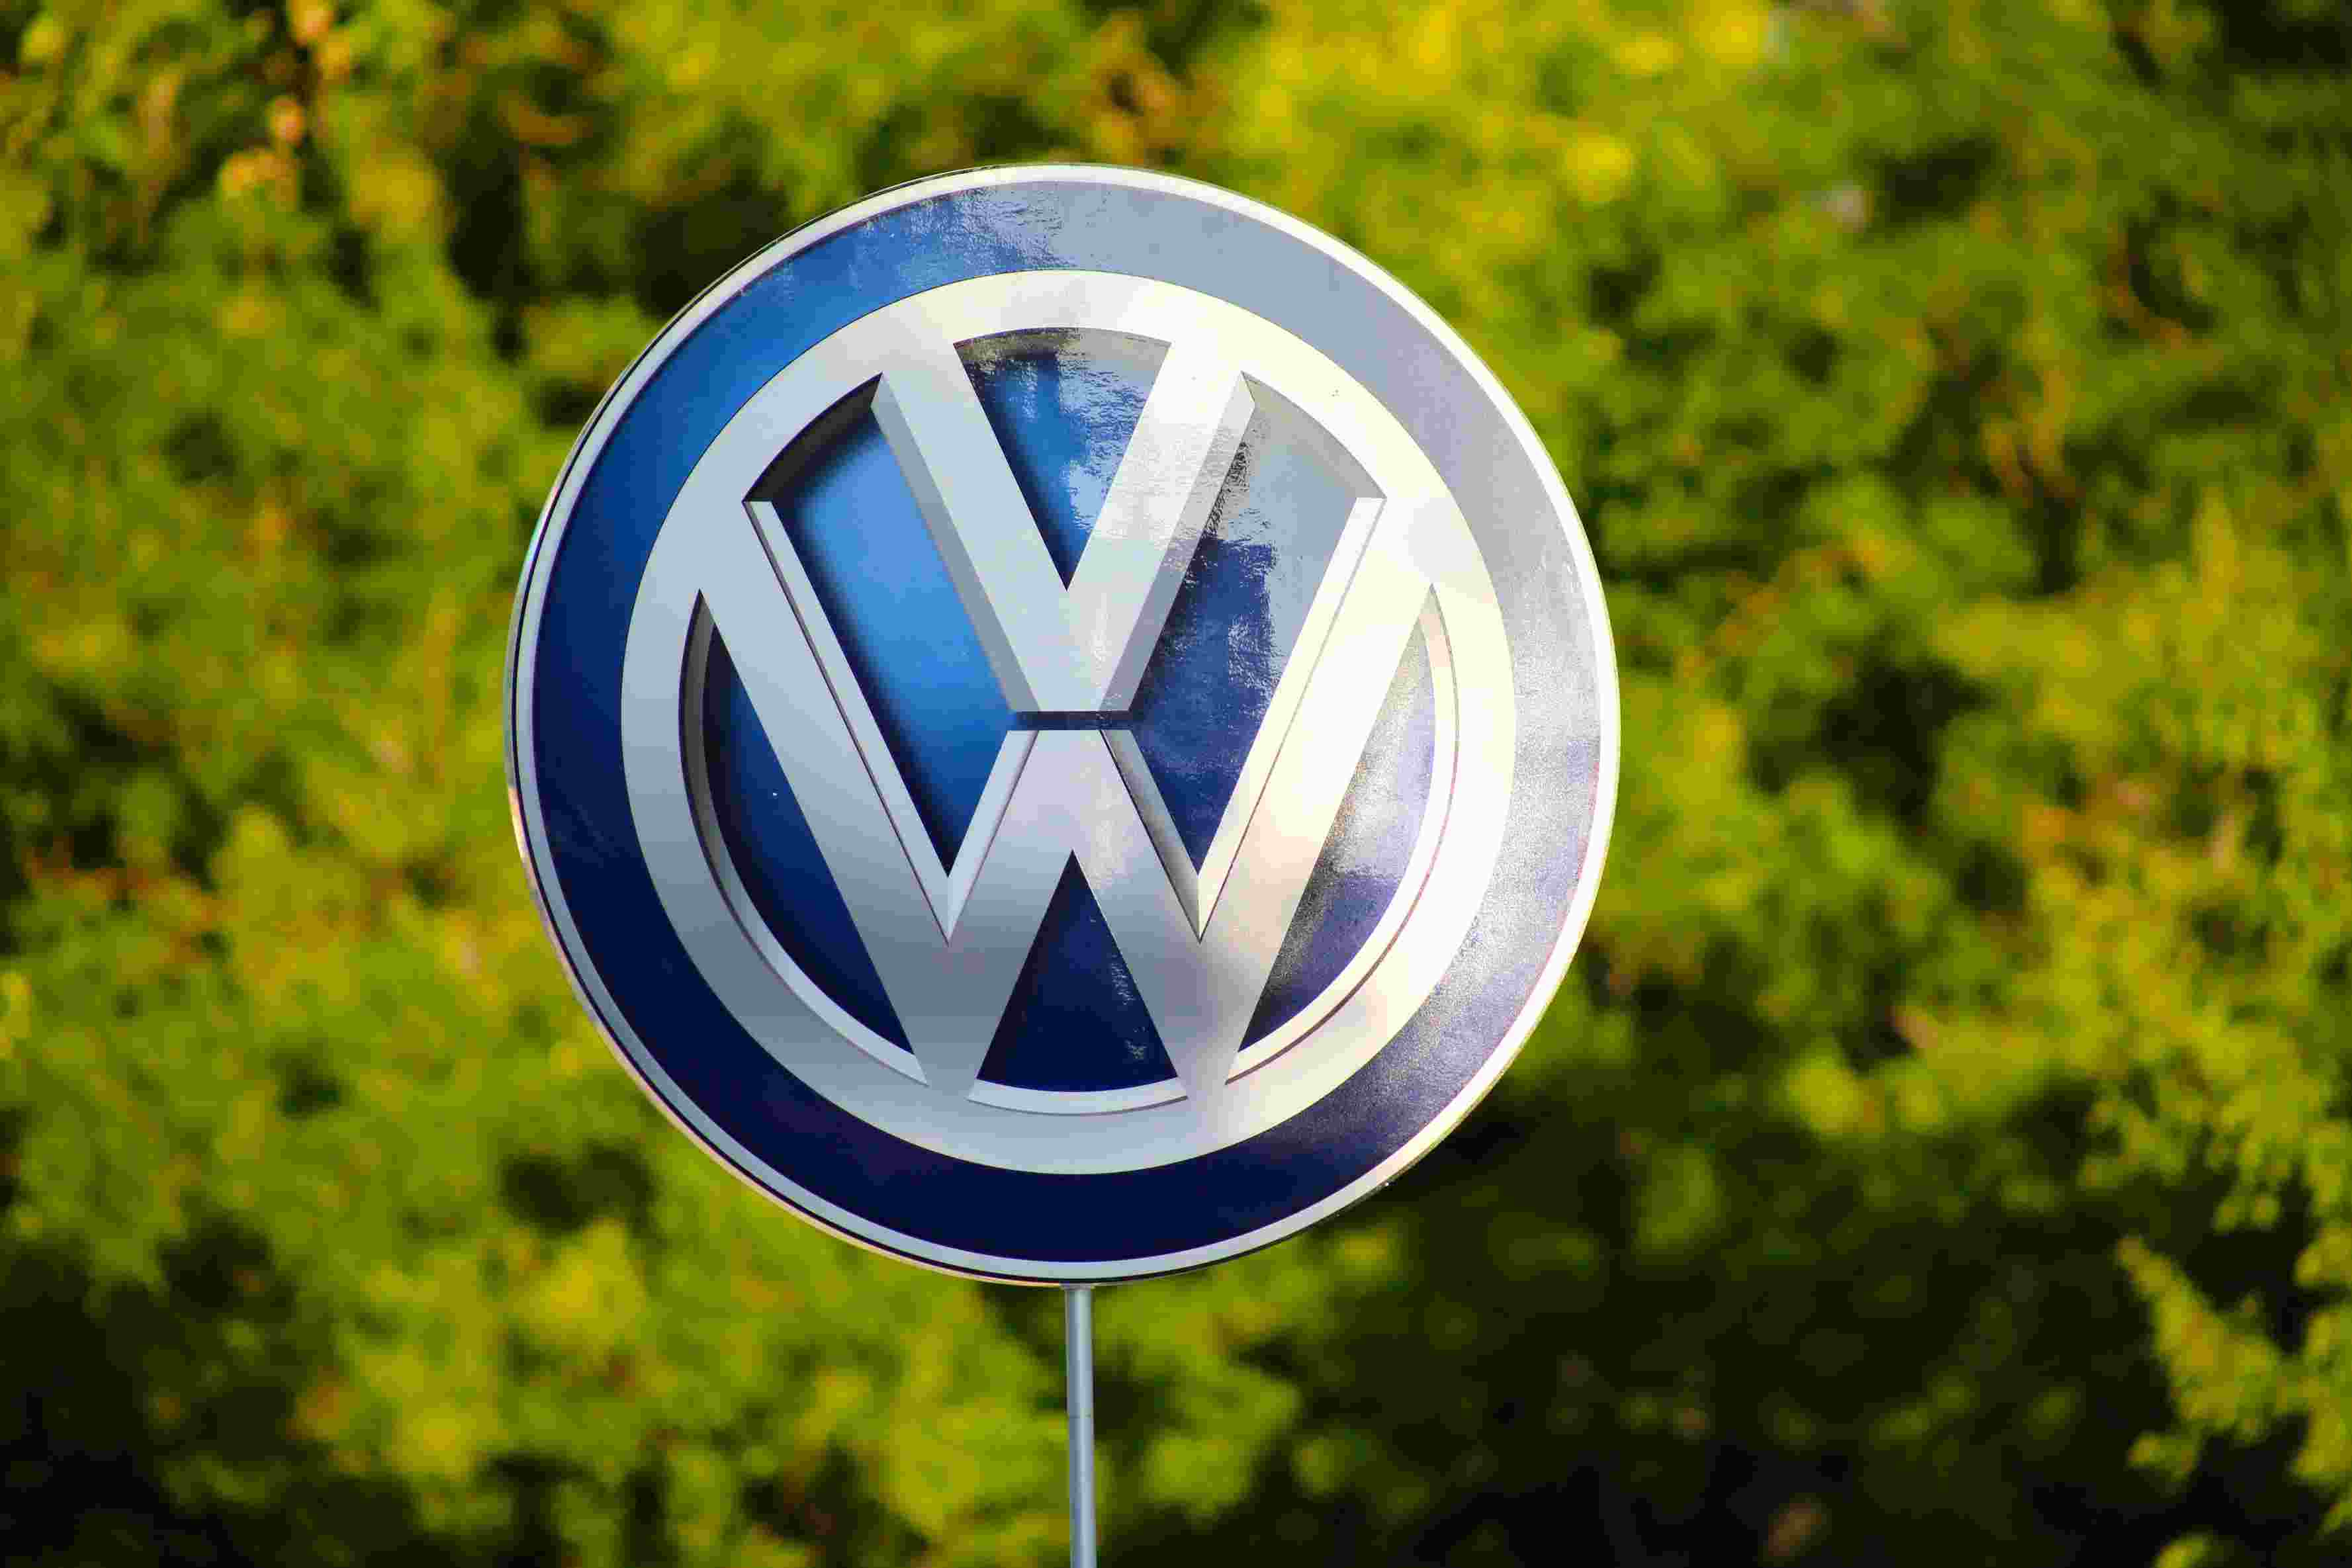 A Volkswagen logo for an electric car